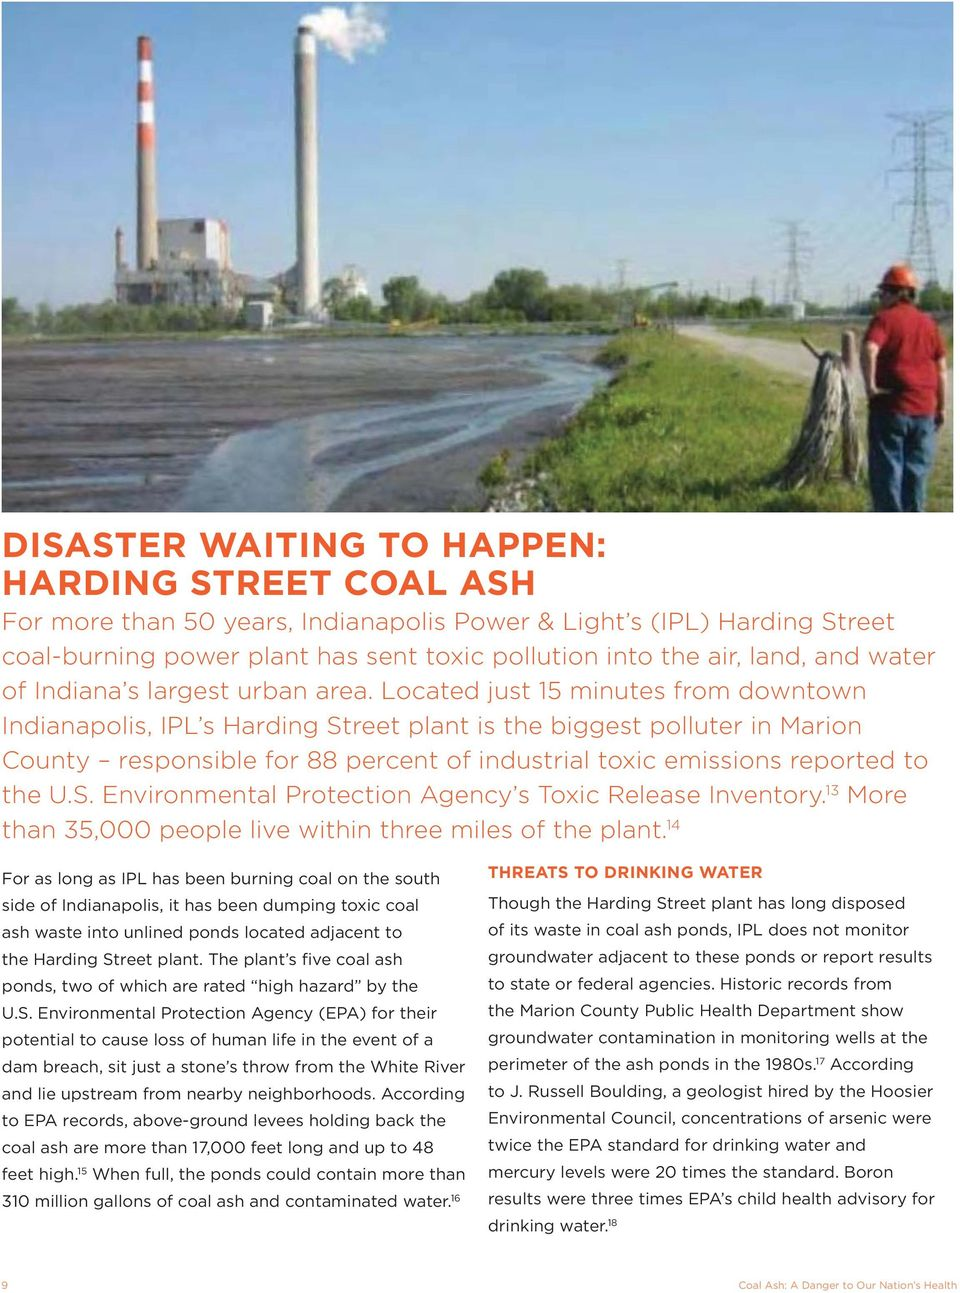 Located just 15 minutes from downtown Indianapolis, IPL s Harding Street plant is the biggest polluter in Marion County responsible for 88 percent of industrial toxic emissions reported to the U.S. Environmental Protection Agency s Toxic Release Inventory.